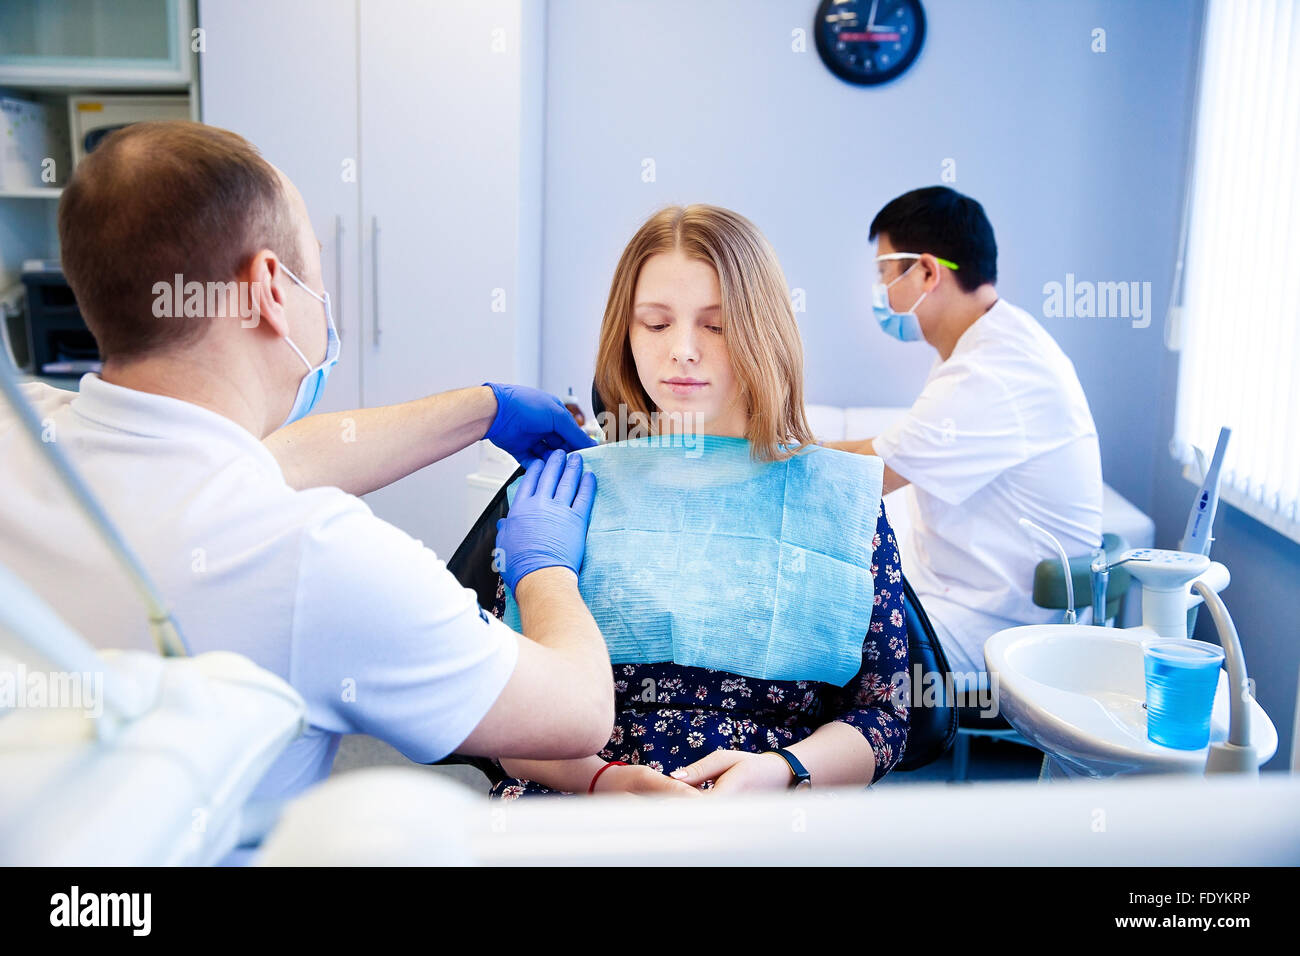 dentist treats teeth - Stock Image